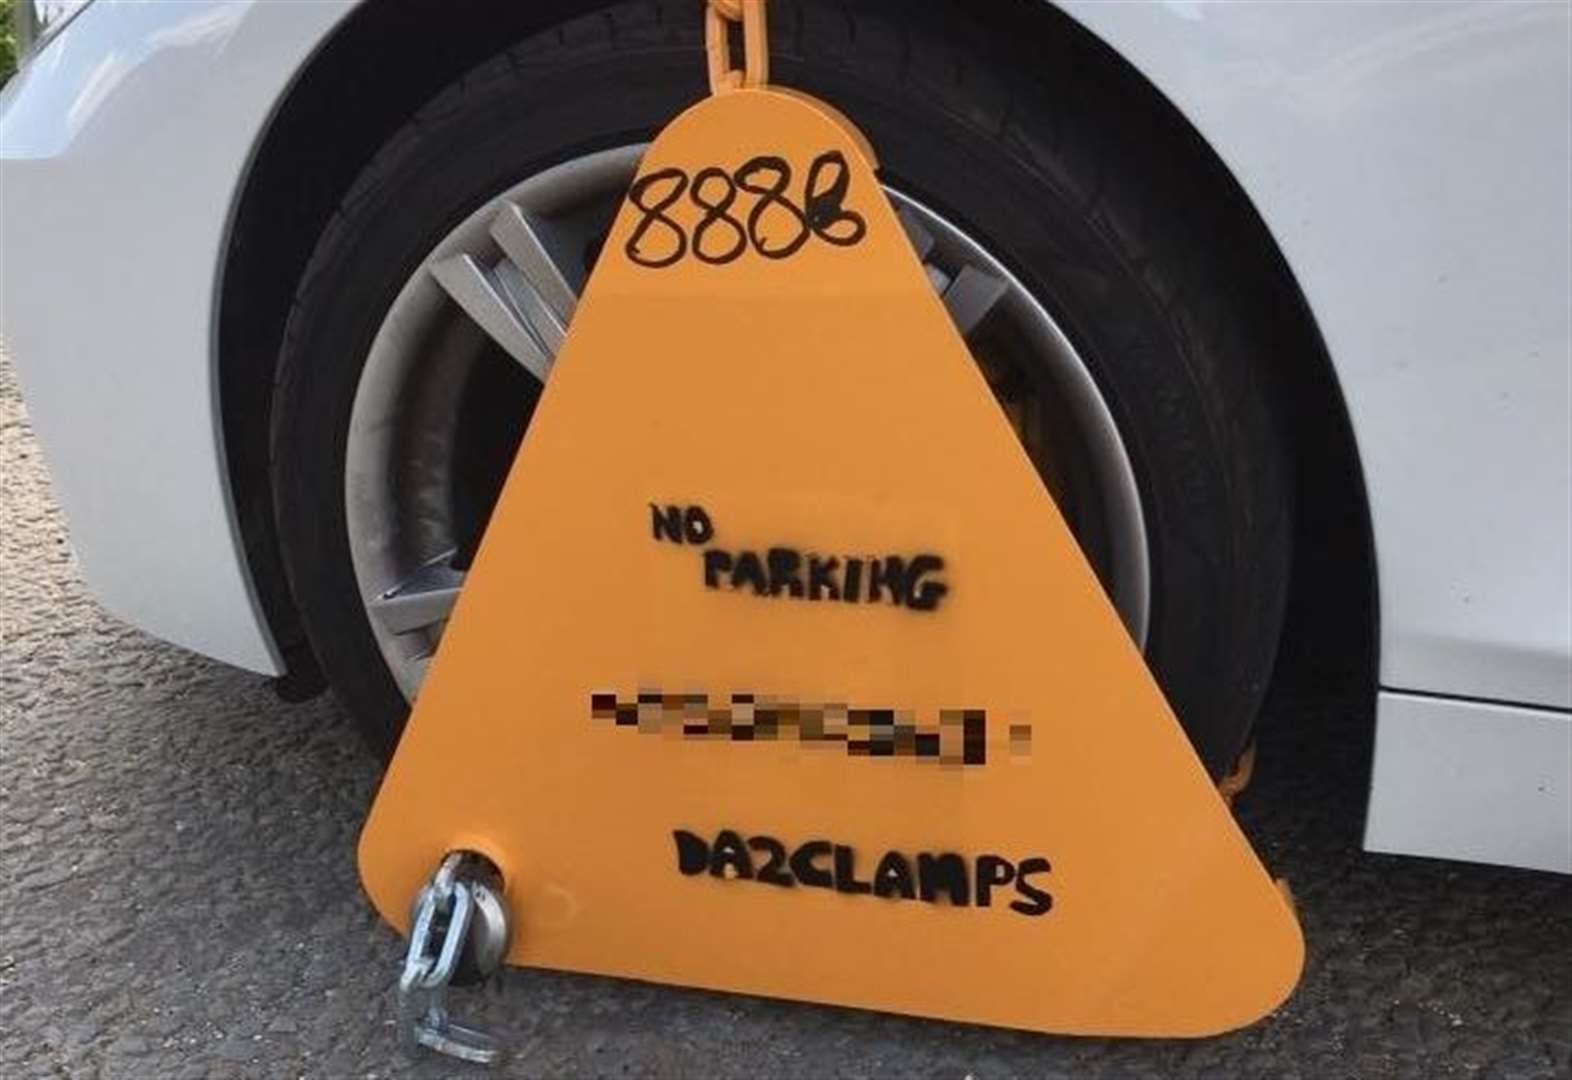 Car clamped by scammers